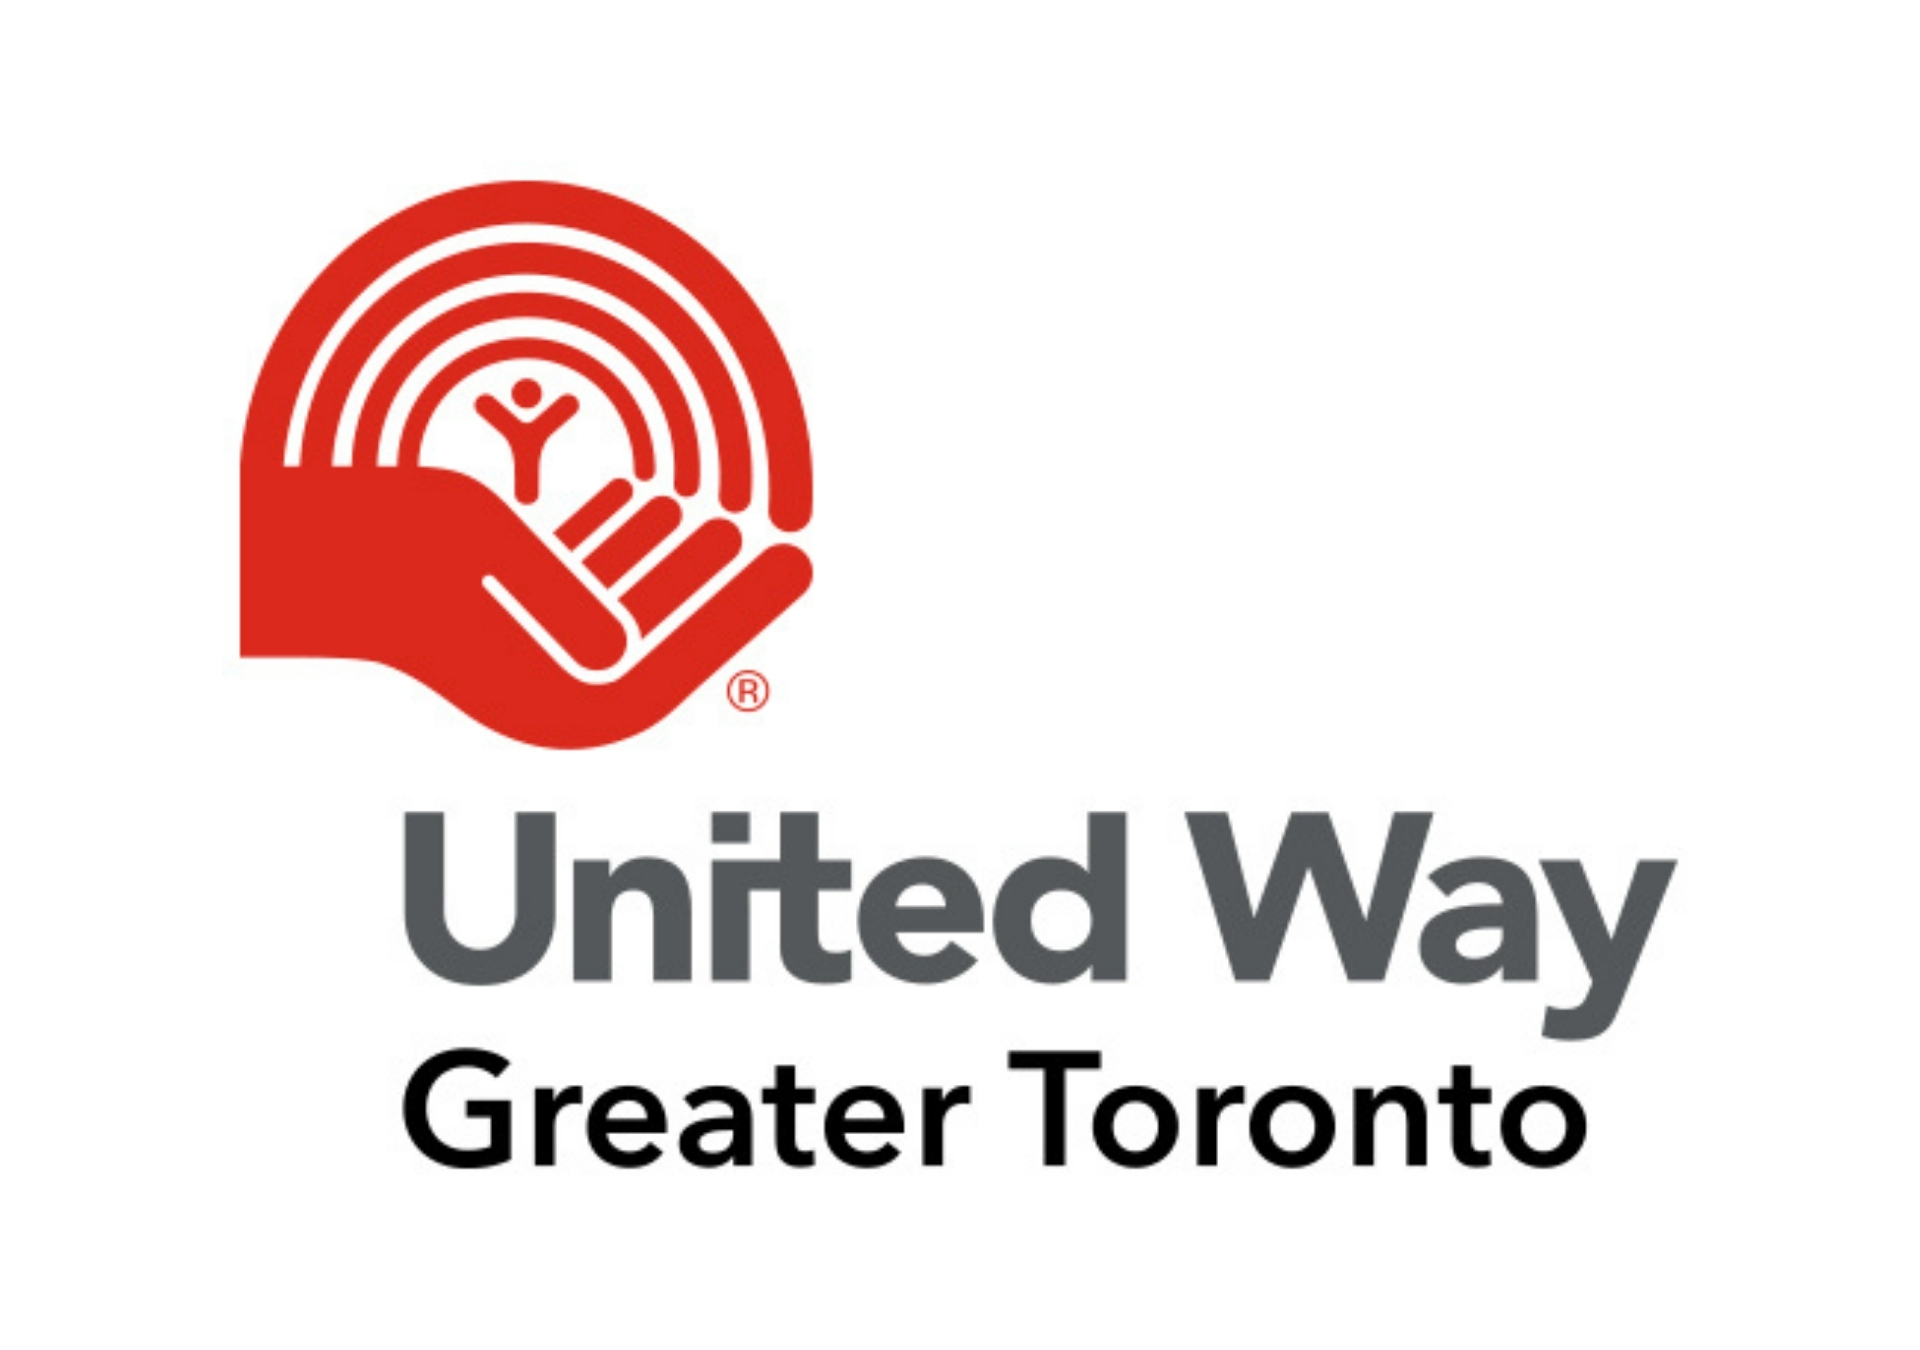 Help us support the work of the United Way Greater Toronto